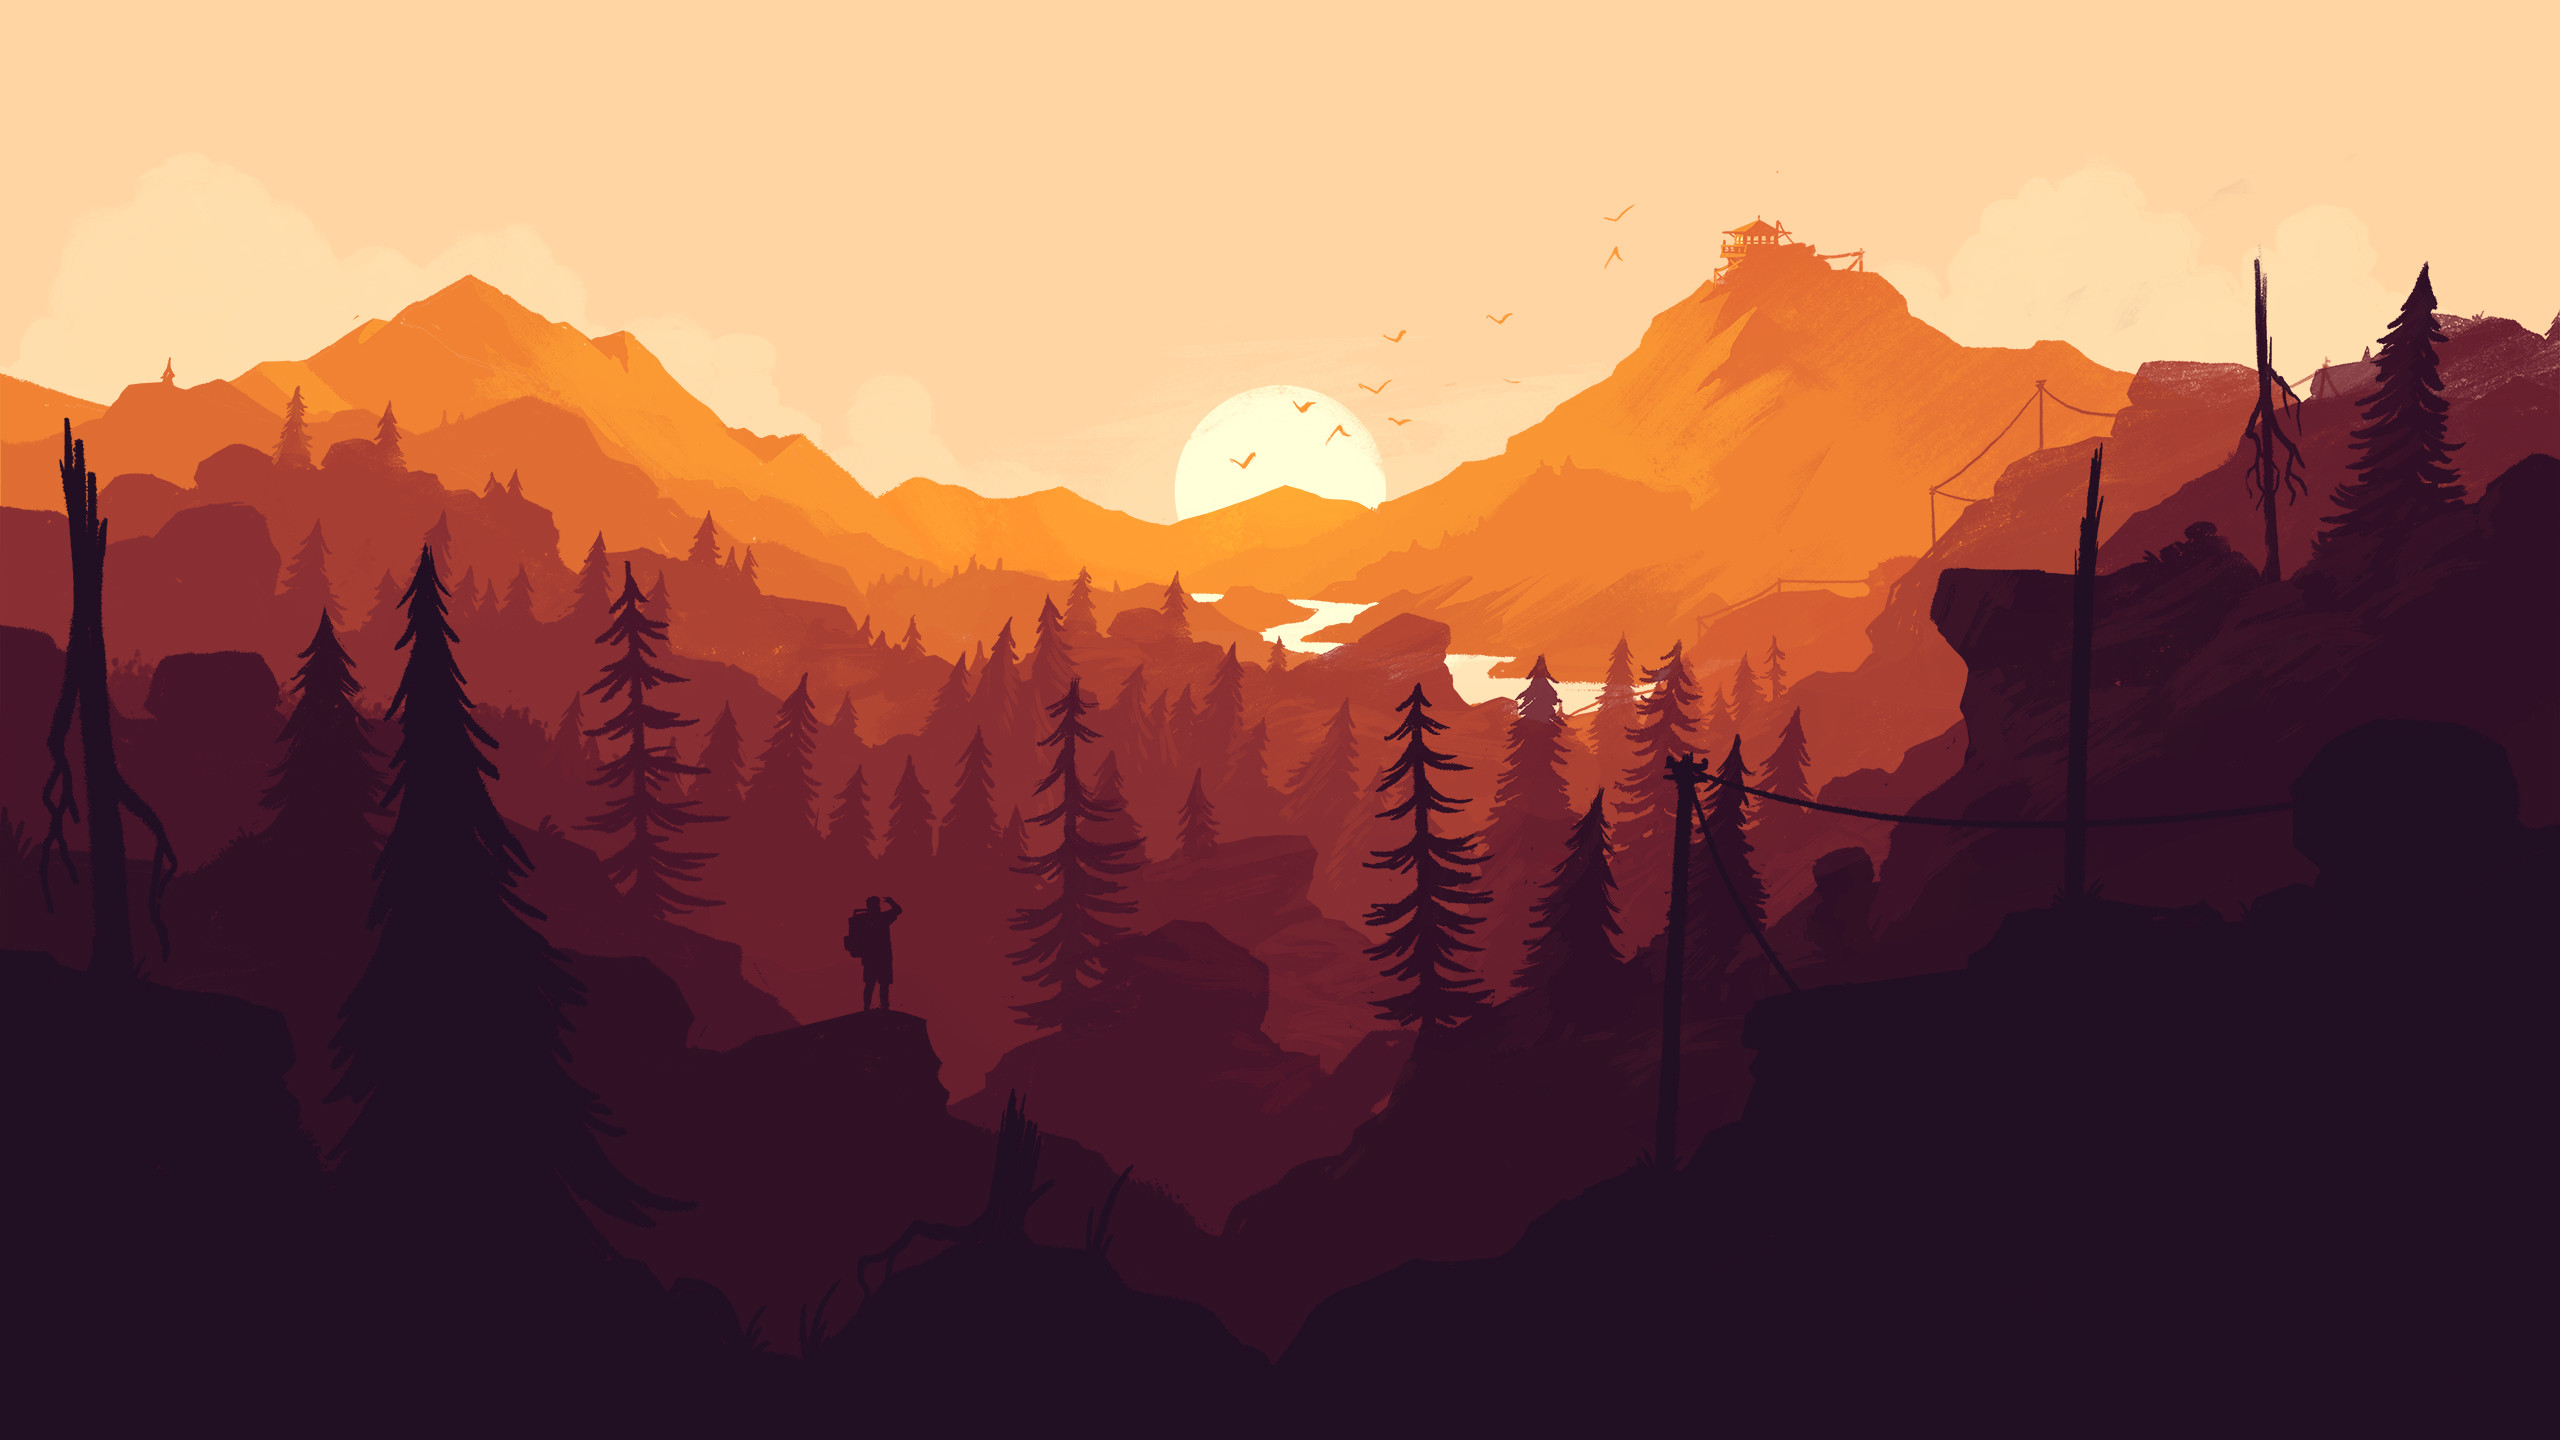 Firewatch videogame wallpaper. Colorful landscape wallpaper, mountains,  forest, trees, nature,